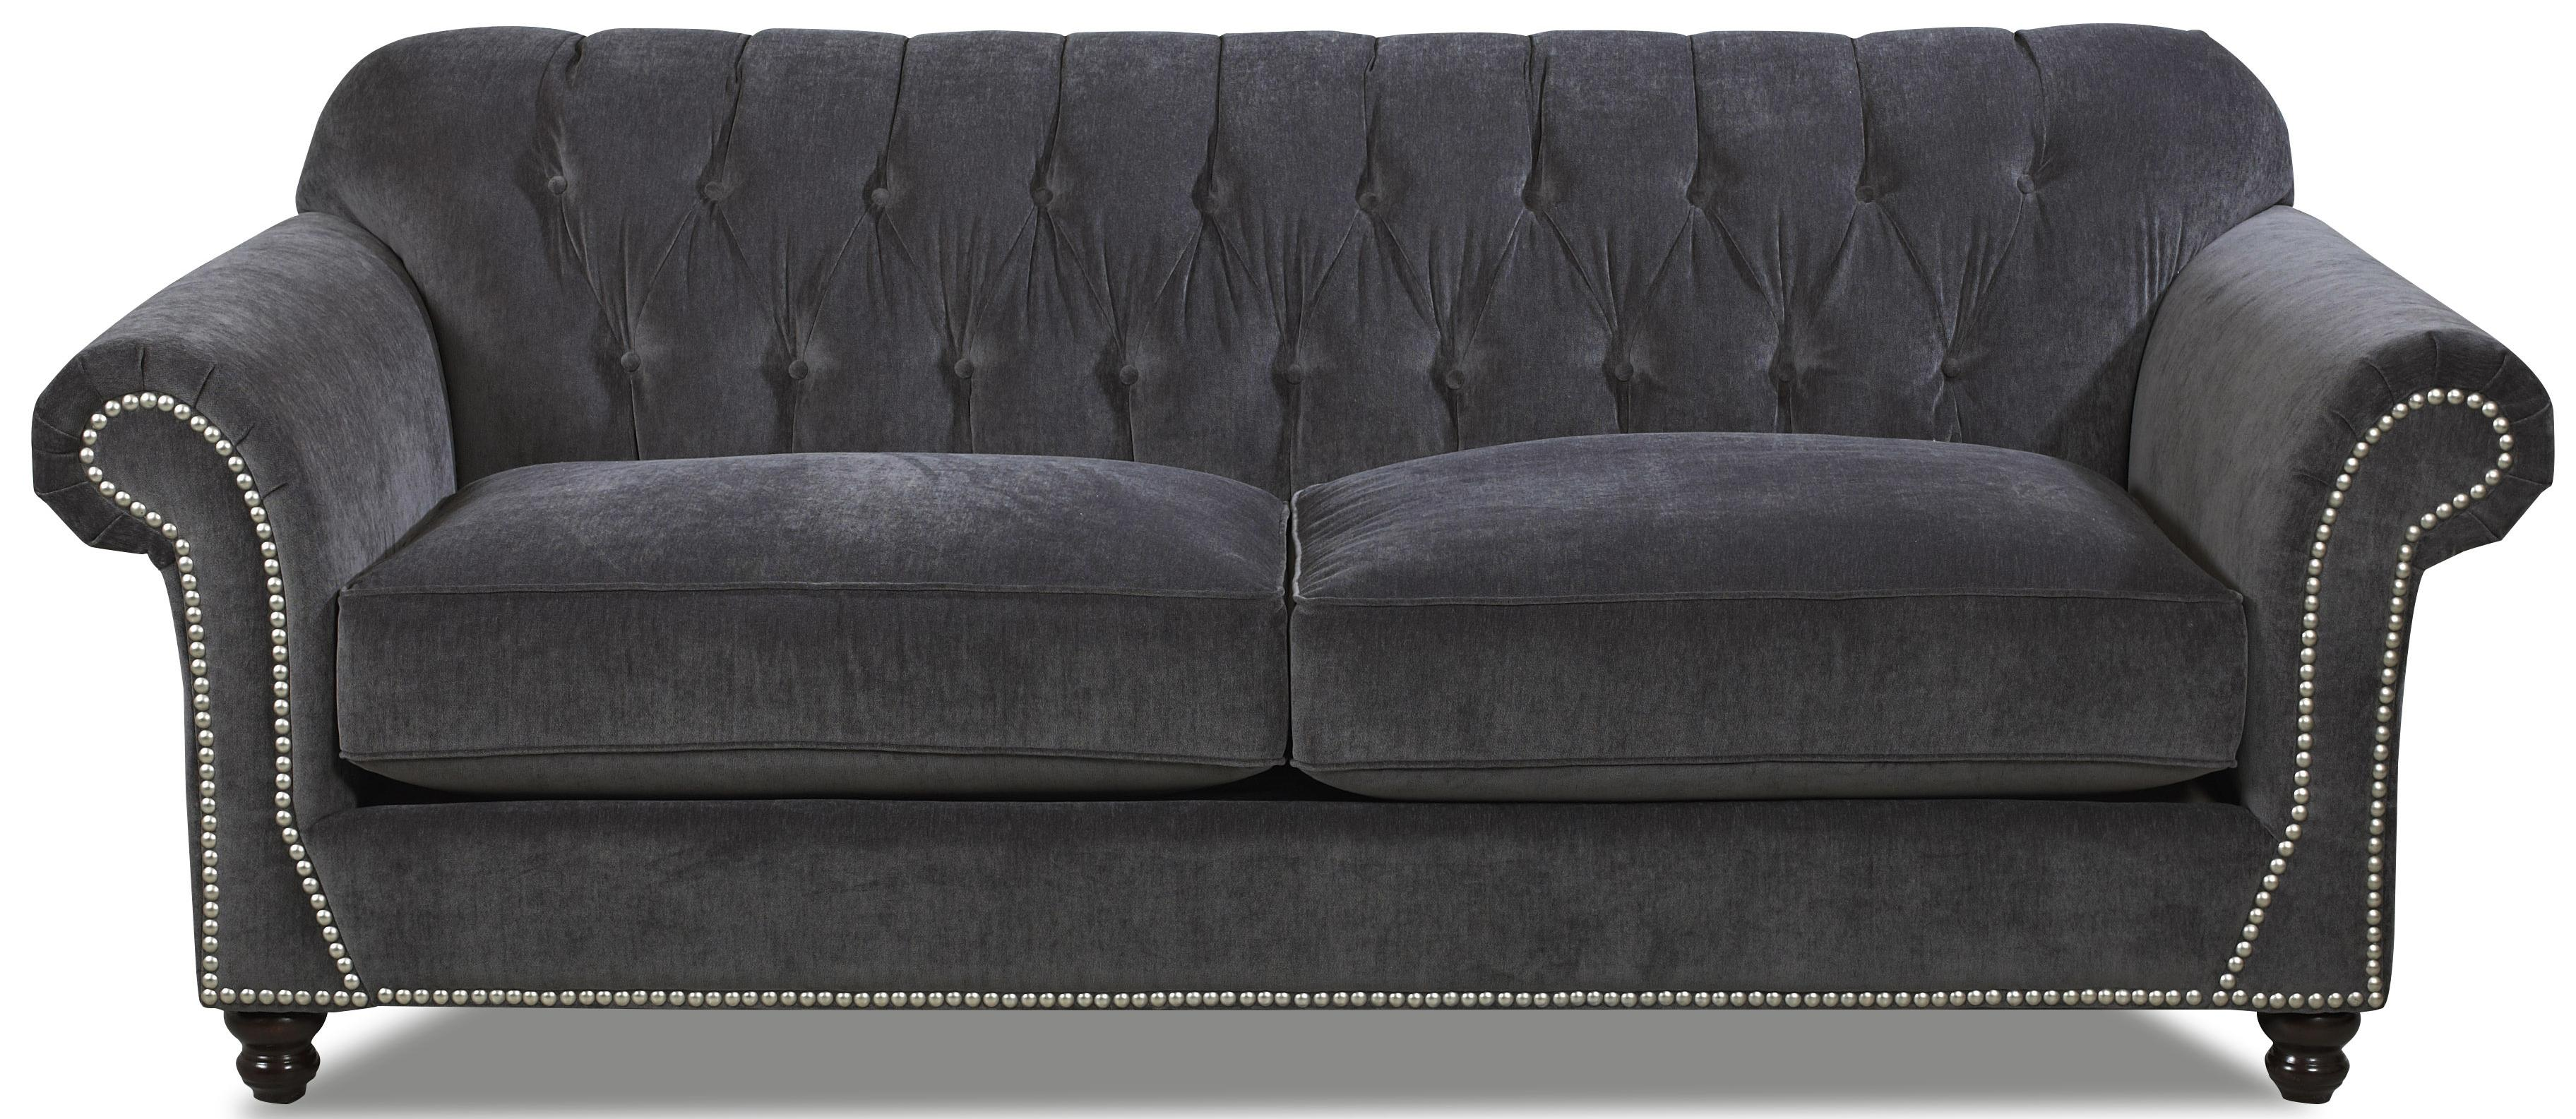 Flynn Traditional Sofa With Button Tufted Back And Rolled Arms By Klaussner